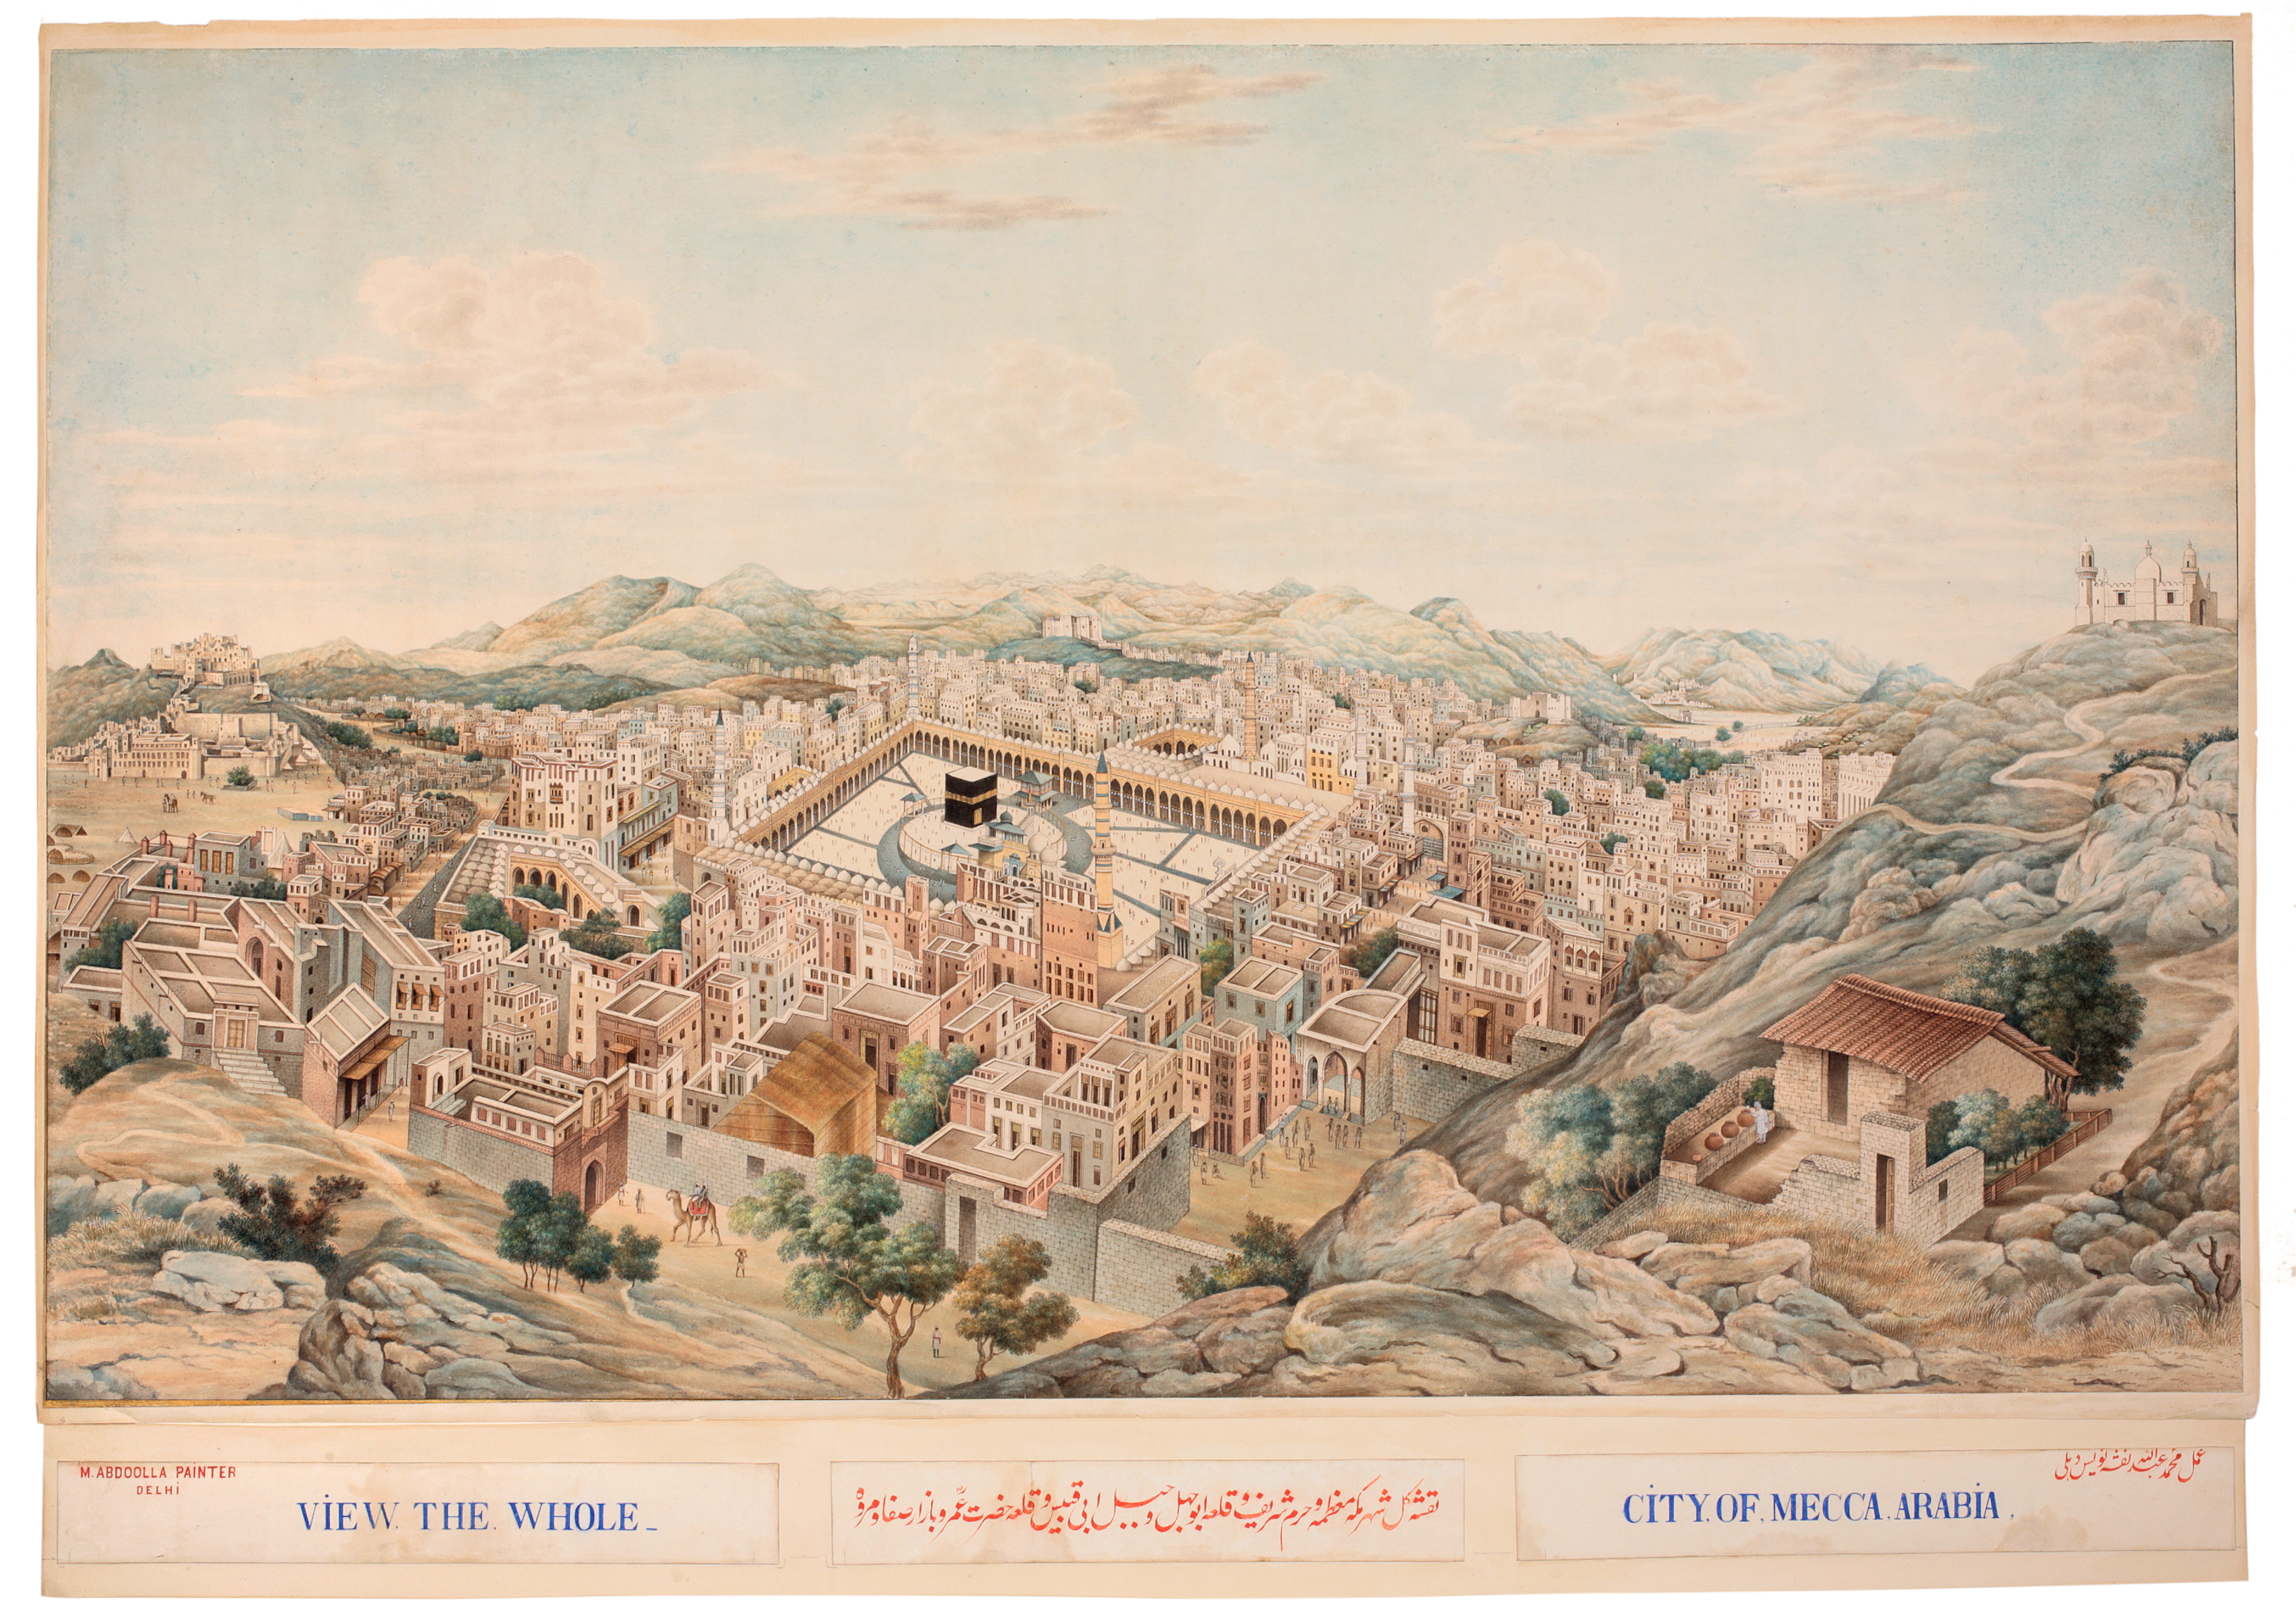 Panoramic view of the city of Mecca